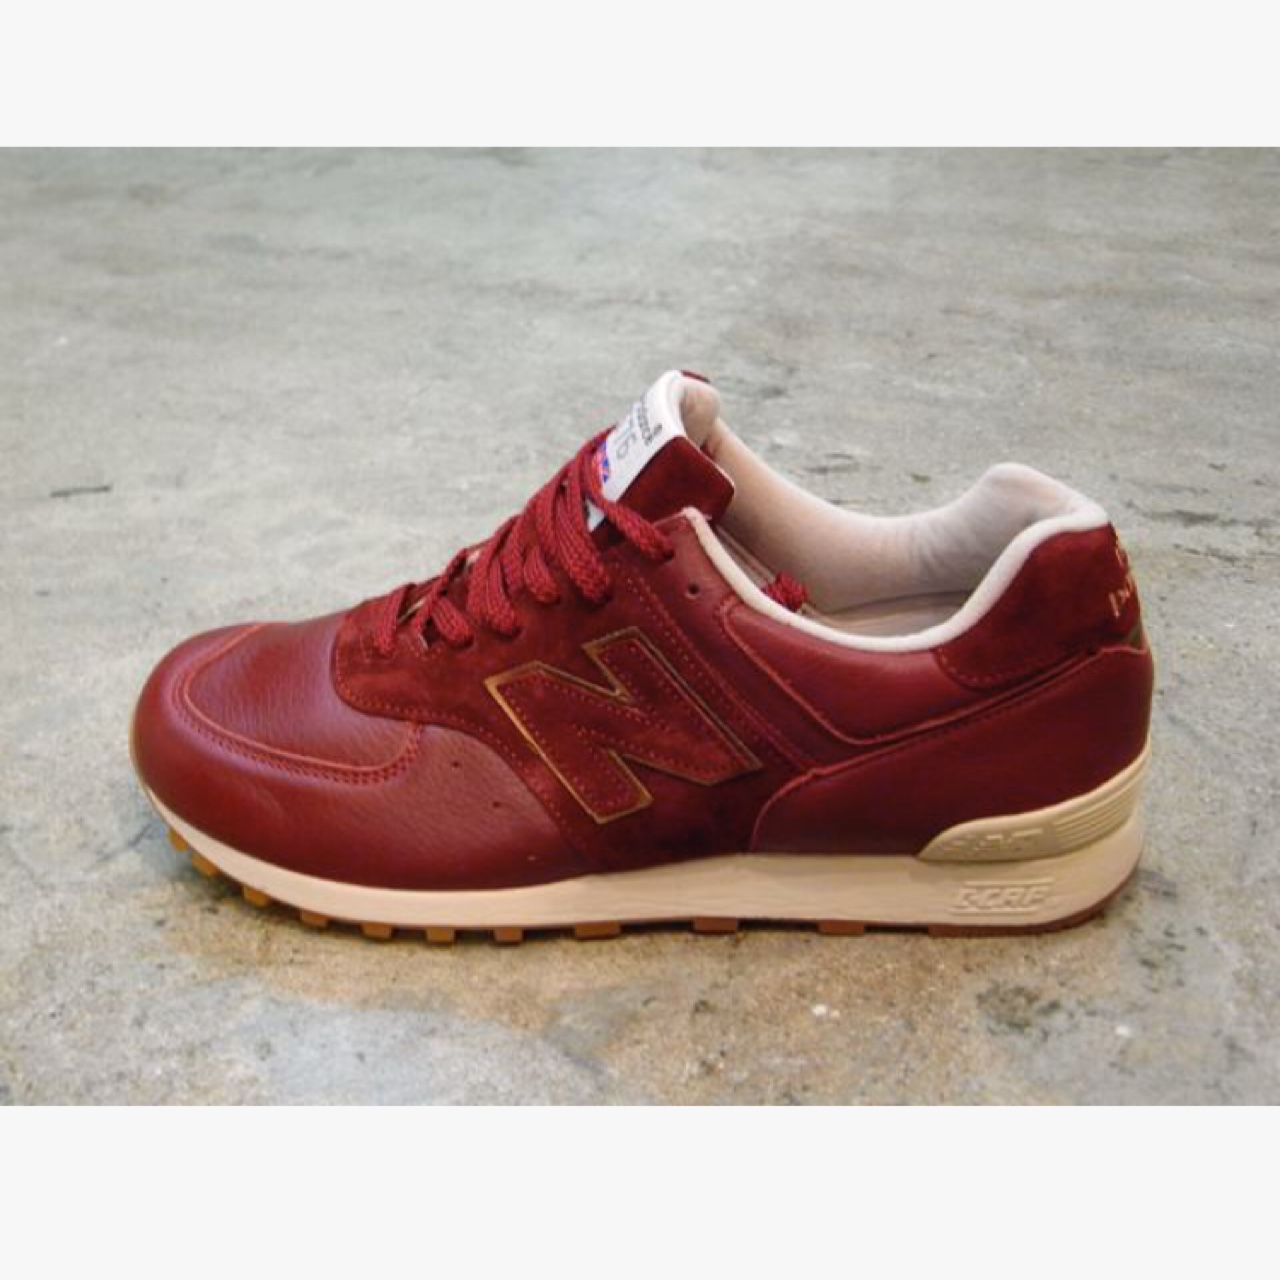 low priced f4e92 2027d Limited edition new balance 574 burgundy - great... - Depop